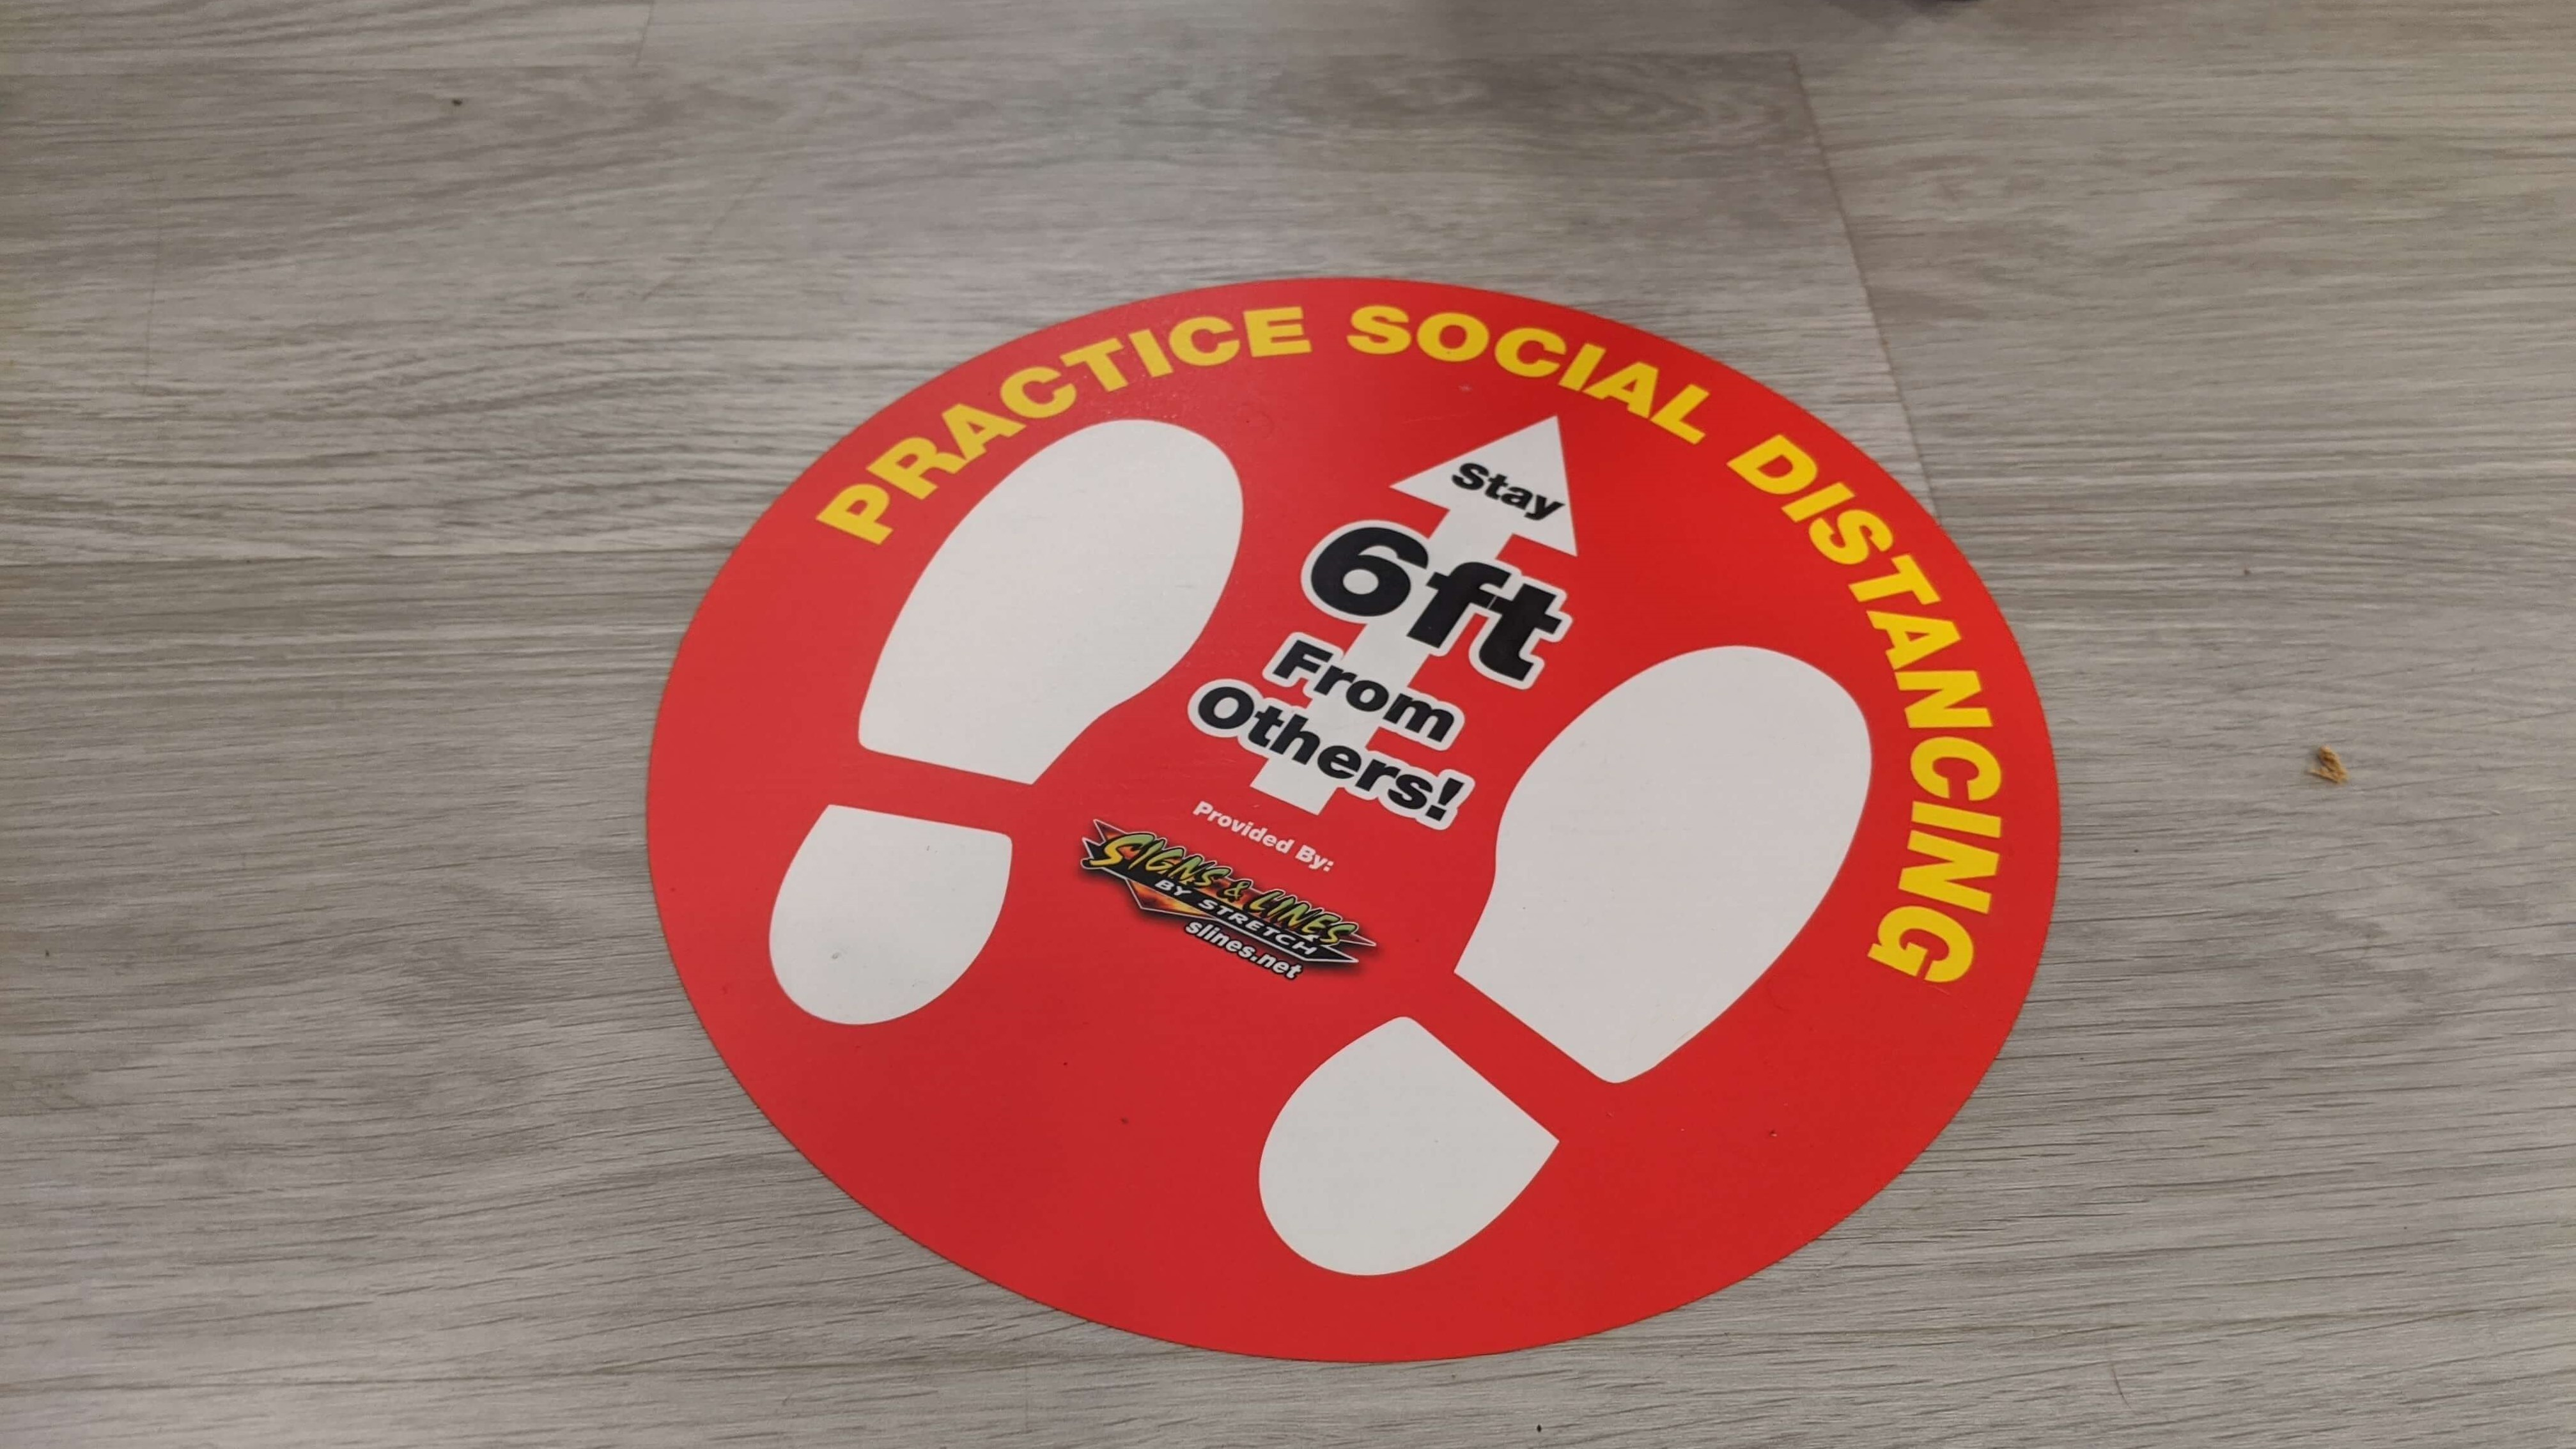 Indoor Social Distancing Floor Graphic Design 2020 By Signs and Lines by Stretch